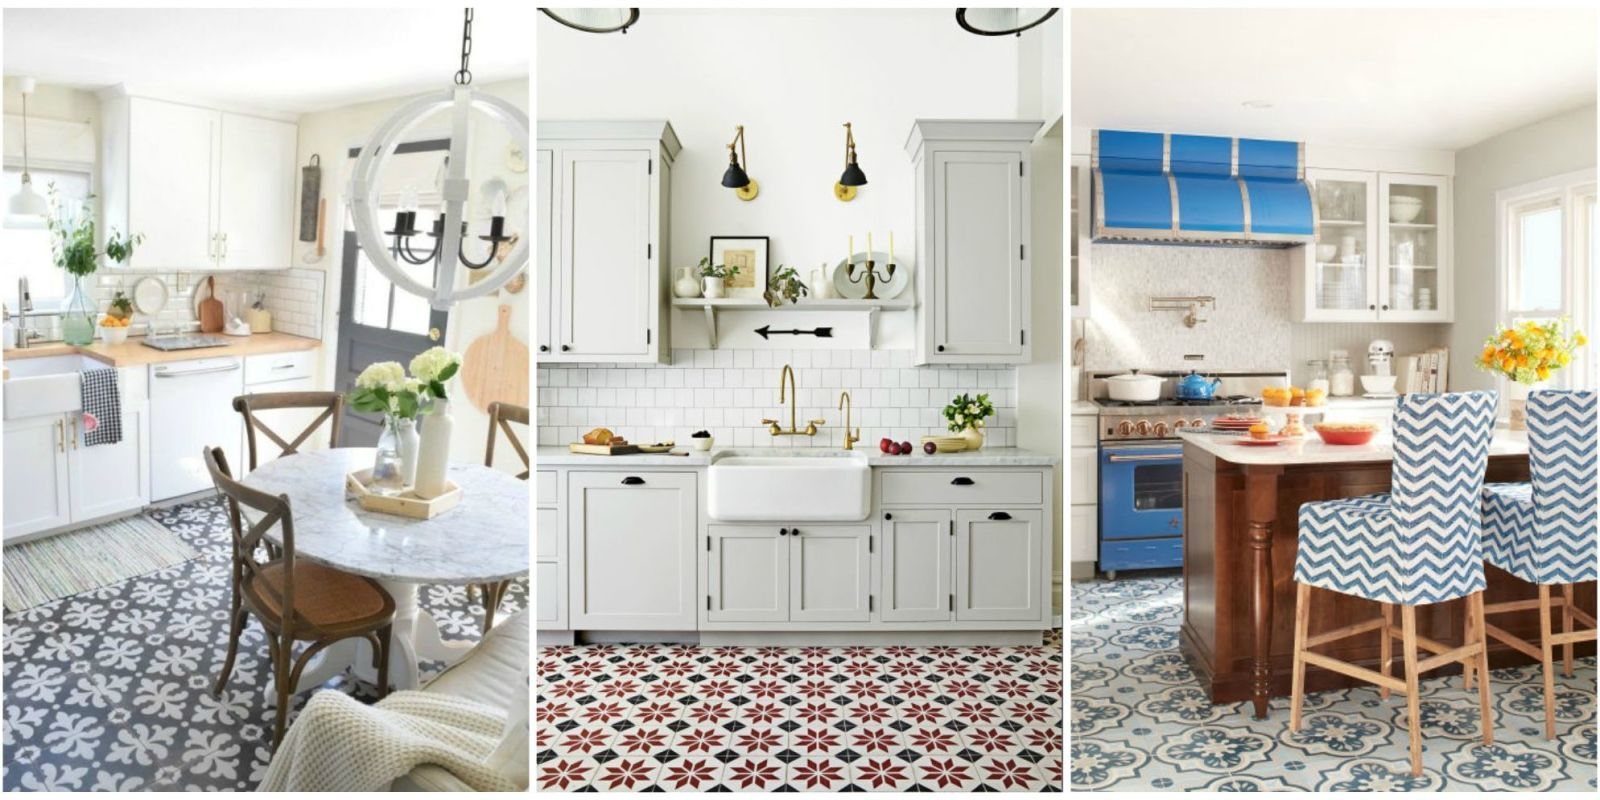 ... Number Of Todayu0027s Homeowners And Designers Are Going Against The Grain,  And Opting For Something A Bit Bolder When It Comes To Their Kitchen Floors.